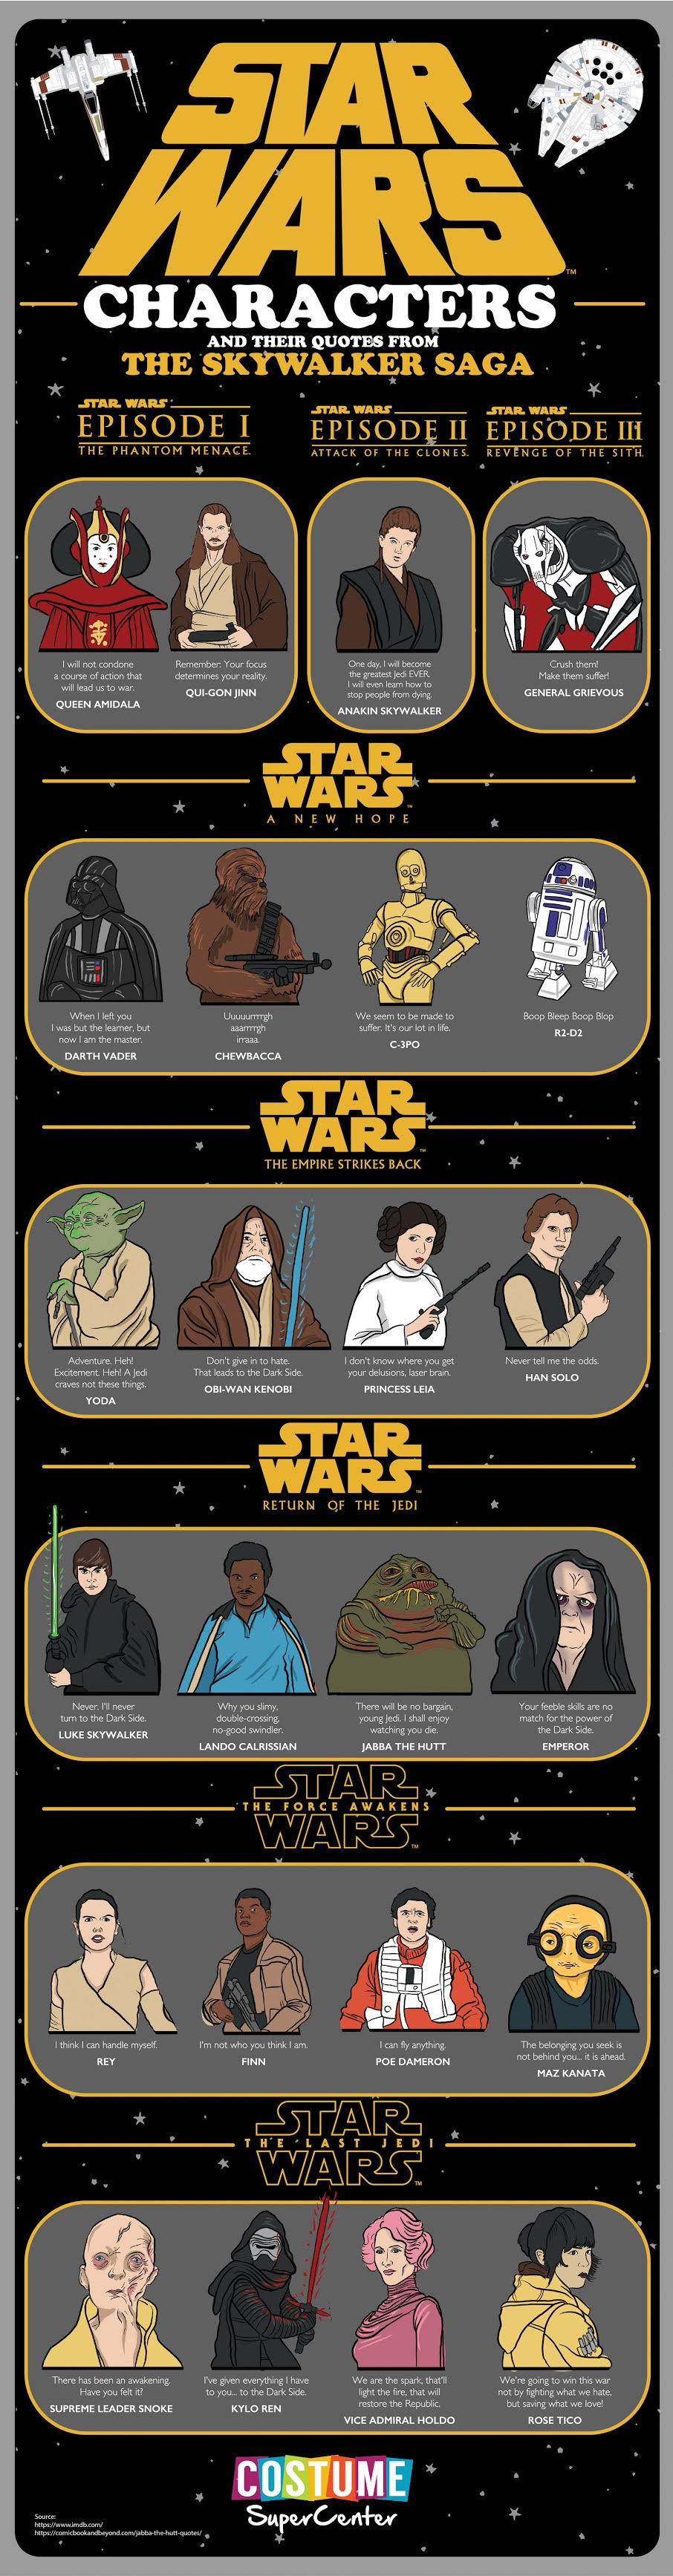 Star Wars Characters and Their Quotes from the Skywalker Saga #infographic #Star Wars Characters #infographics #Skywalker Saga #Quotes